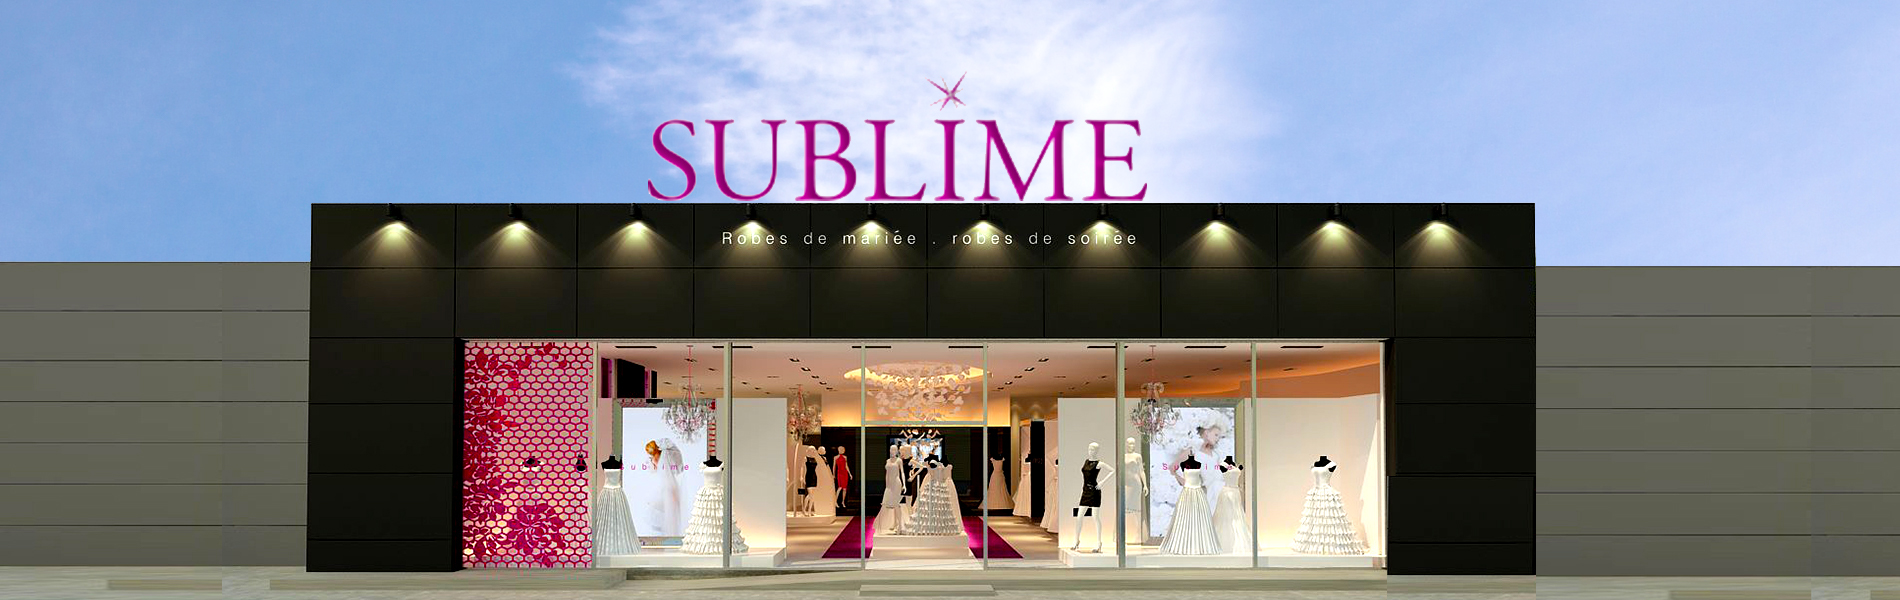 sublimefrance - showroom - herblay - boutique mariage